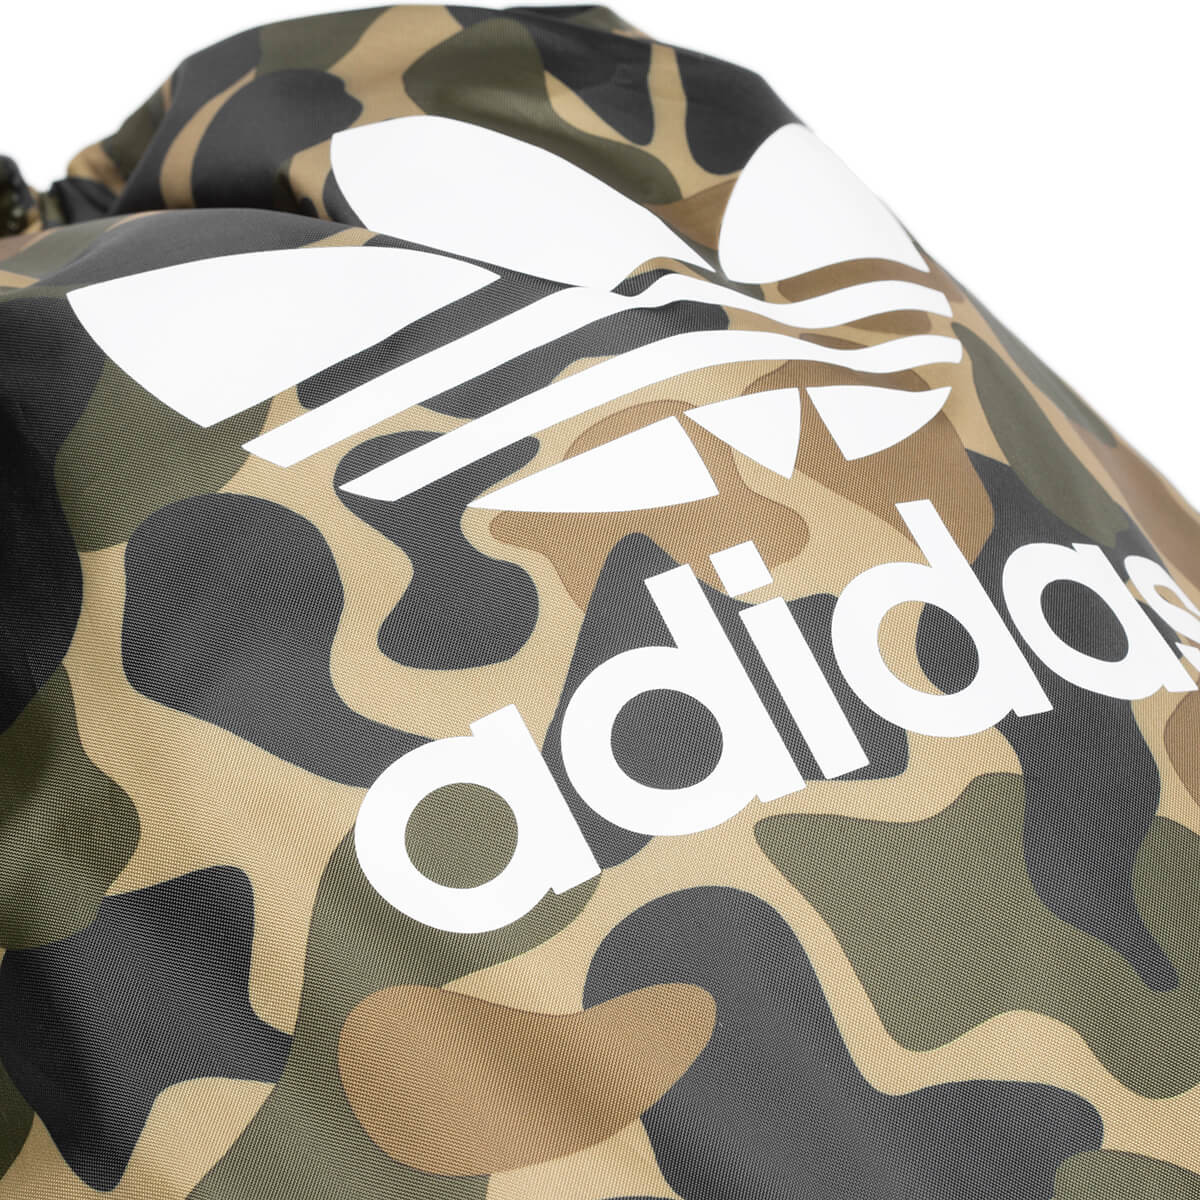 ba7997a2f1 Cordon ADIDAS sacacordon sacados cordbag backpack military camouflage  streetware dope mode fashion best top brendy musthave .